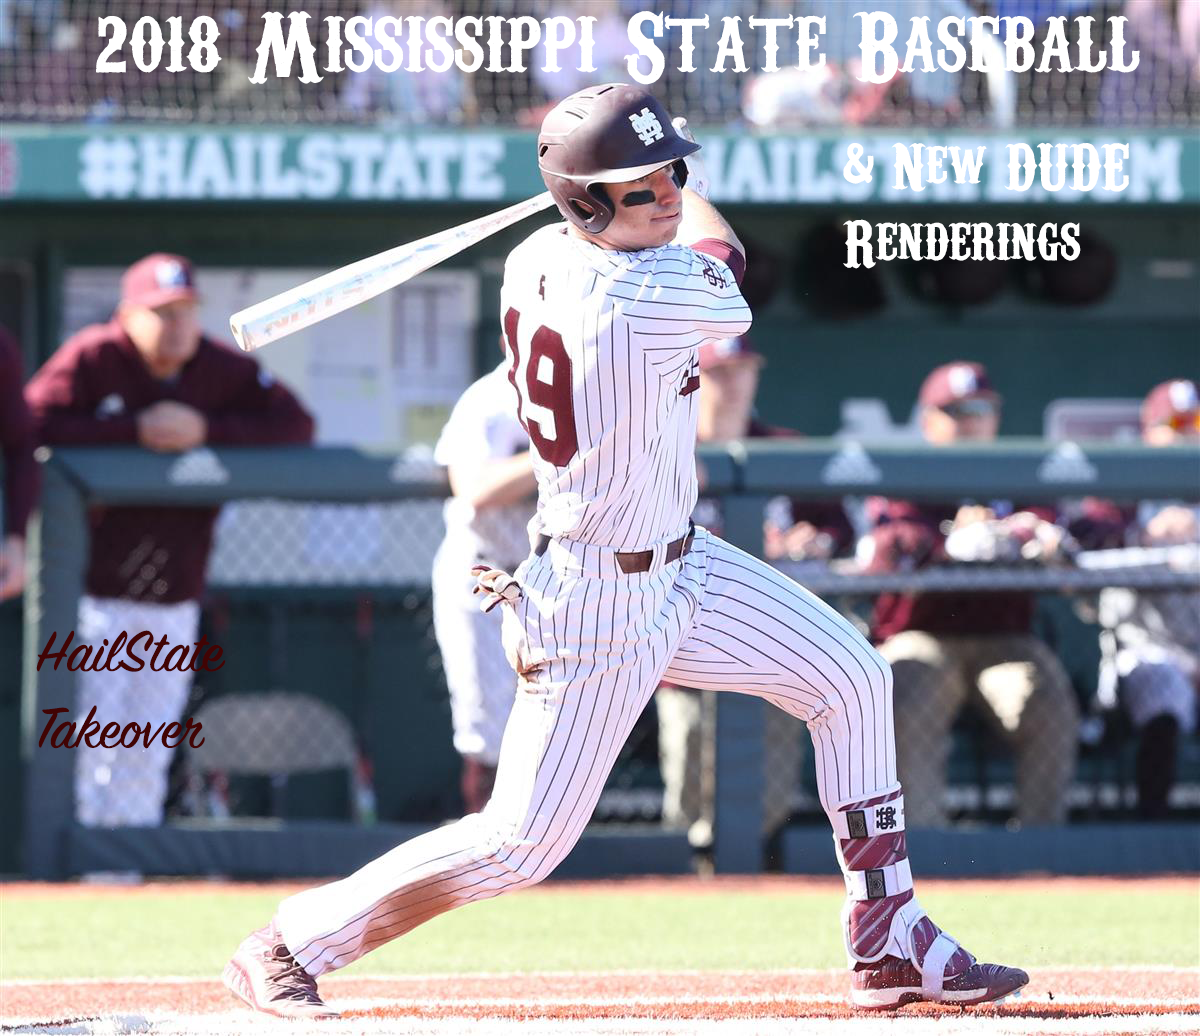 mississippi state releases 2018 baseball schedule and new